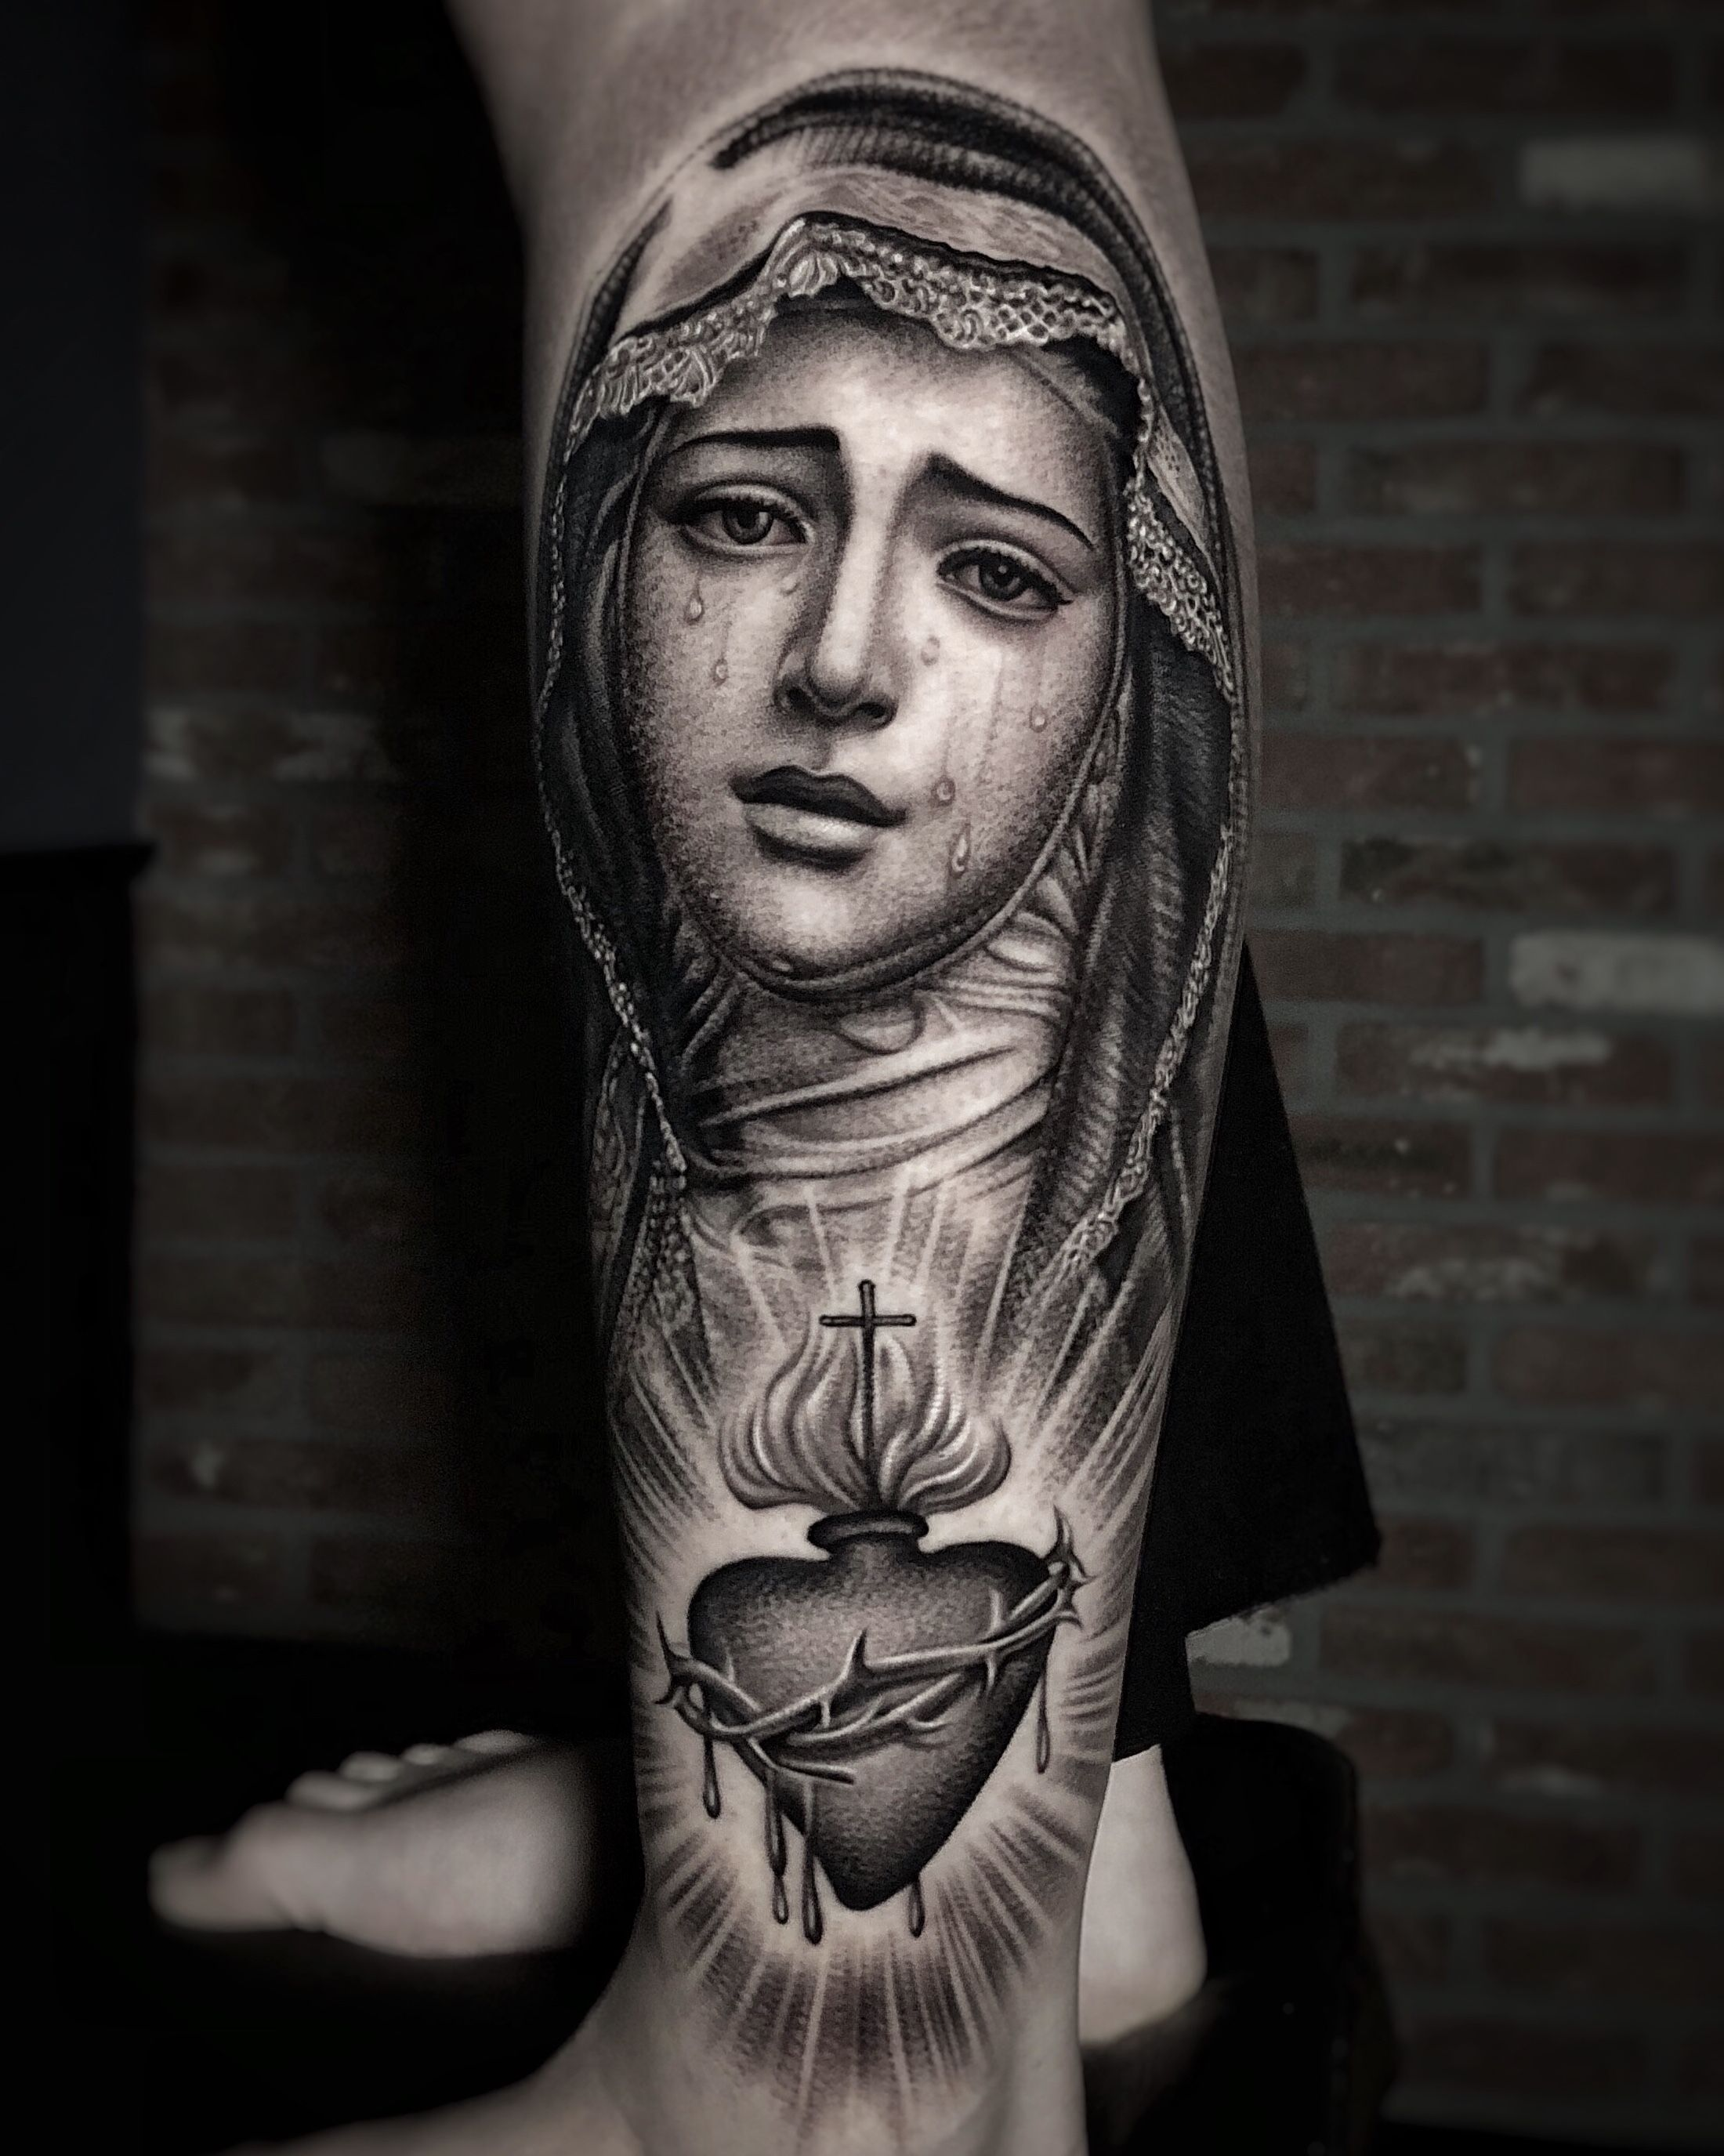 YGs New Virgin Mary Tattoo Covers His Entire Head - Stereogum